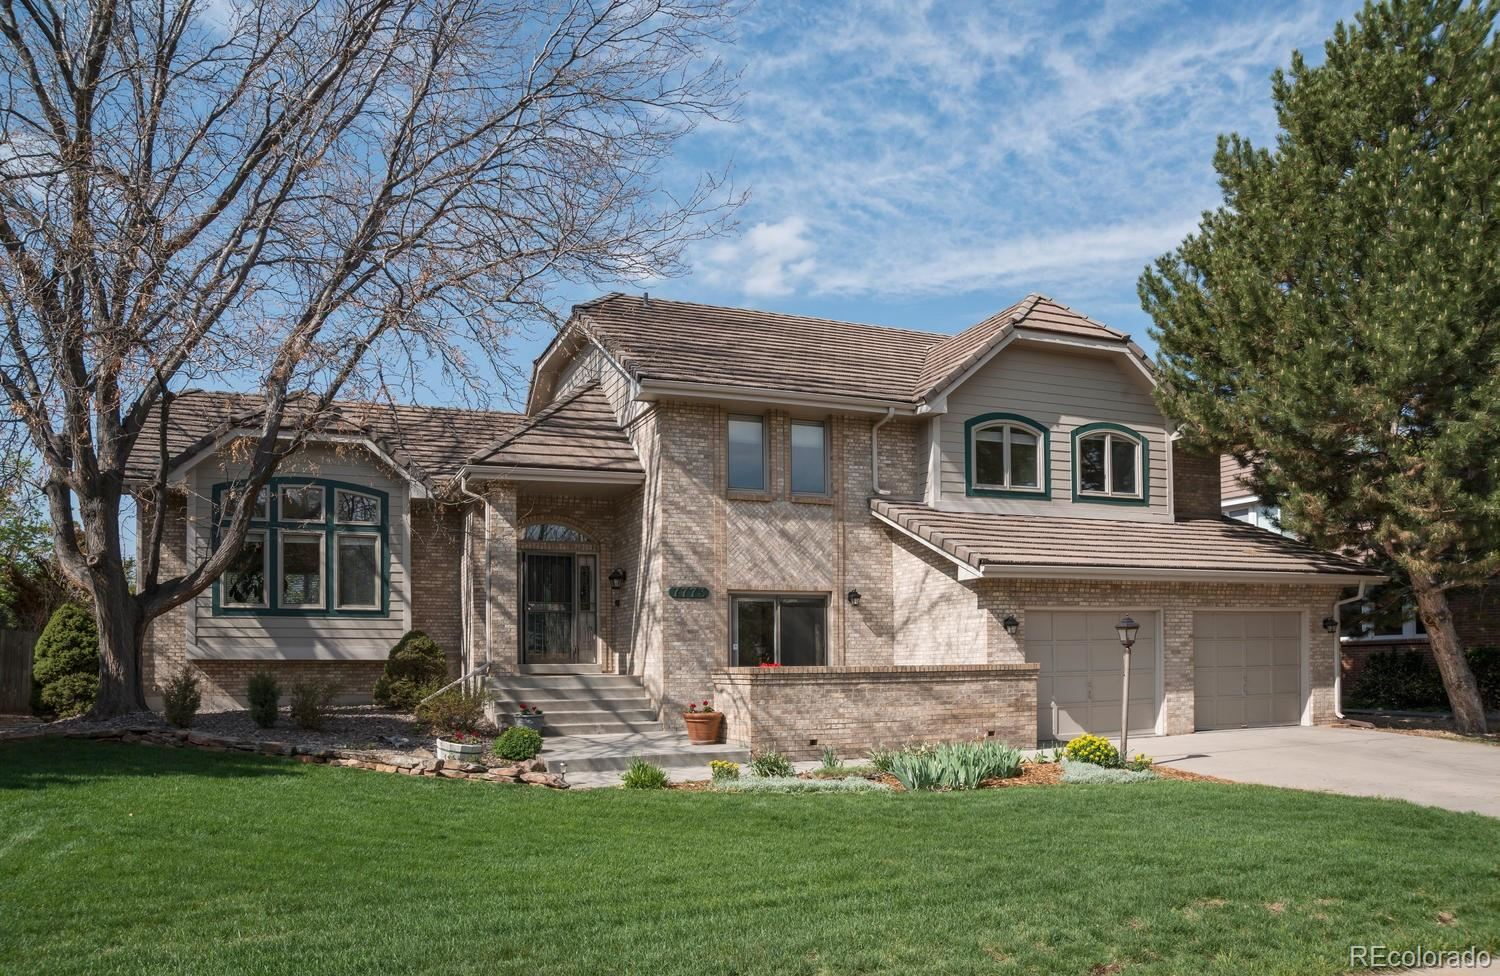 Property Image Of 7773 S Louthan Street In Littleton, Co